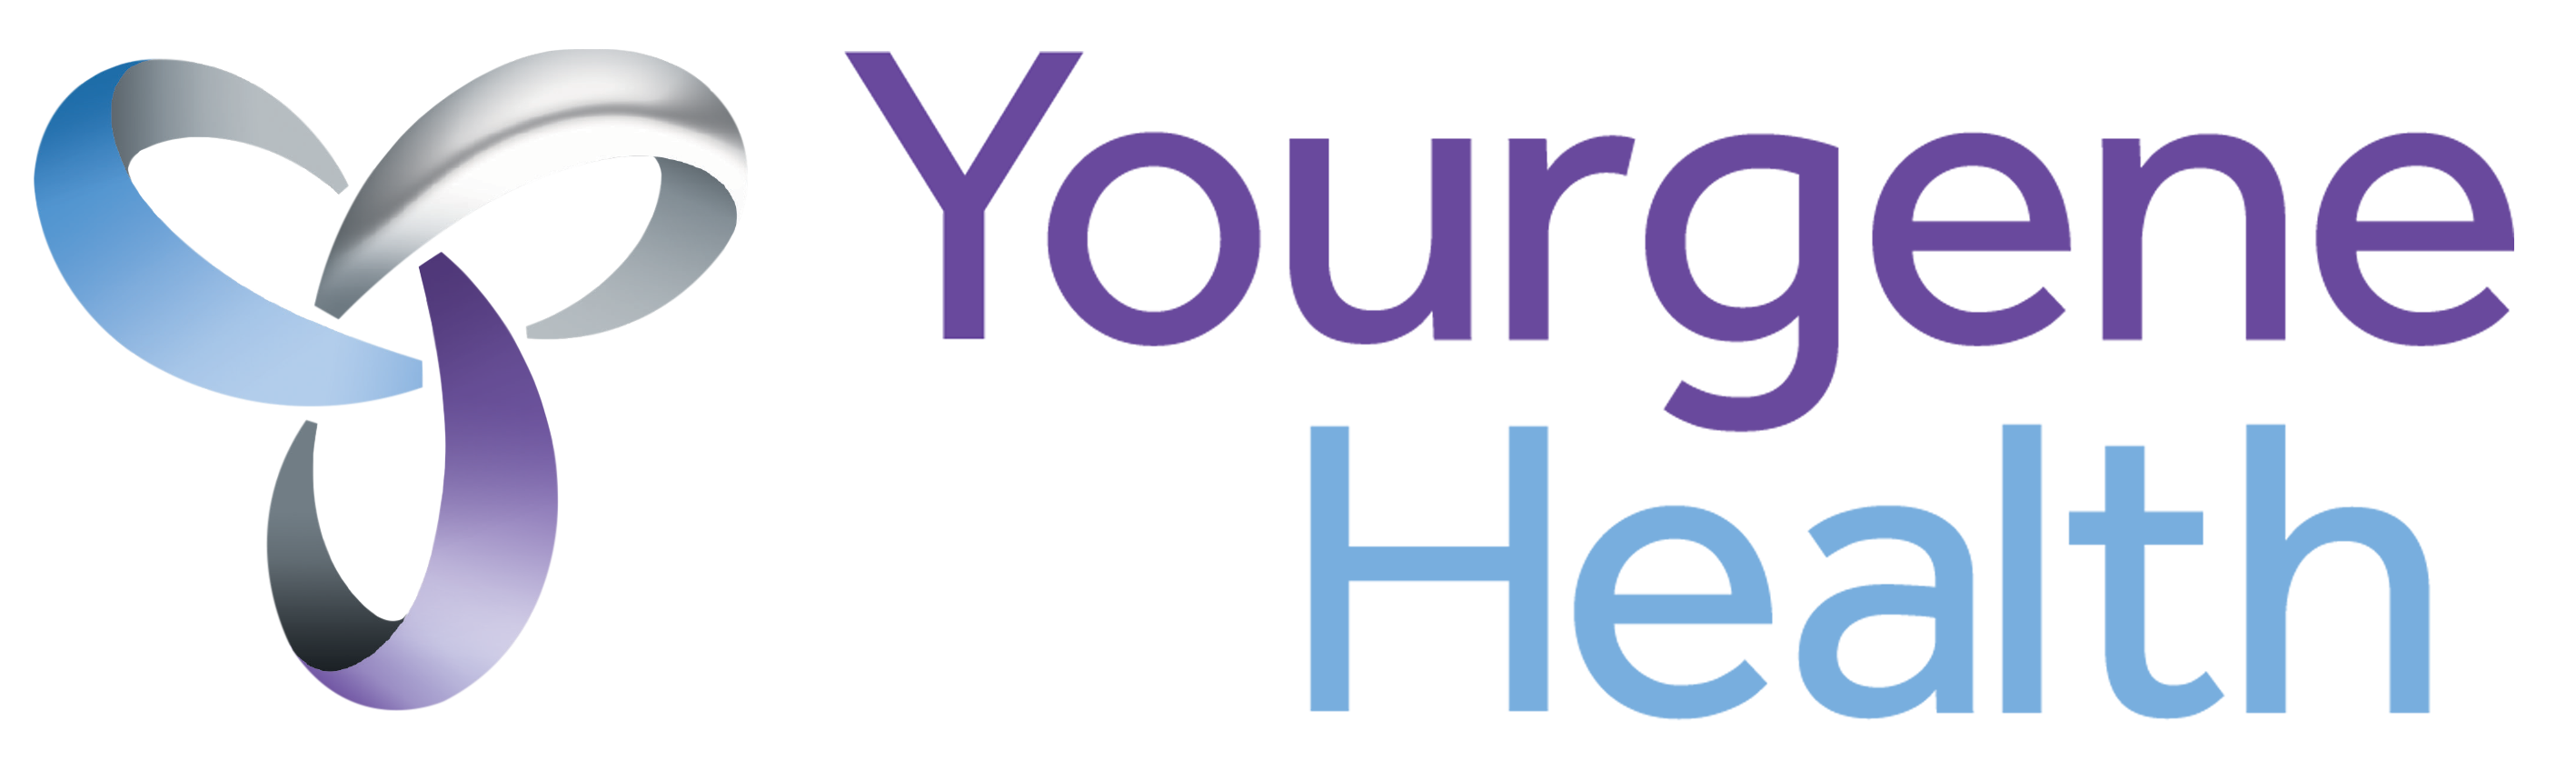 yourgene-health-plc-logo-clear-bkground.png